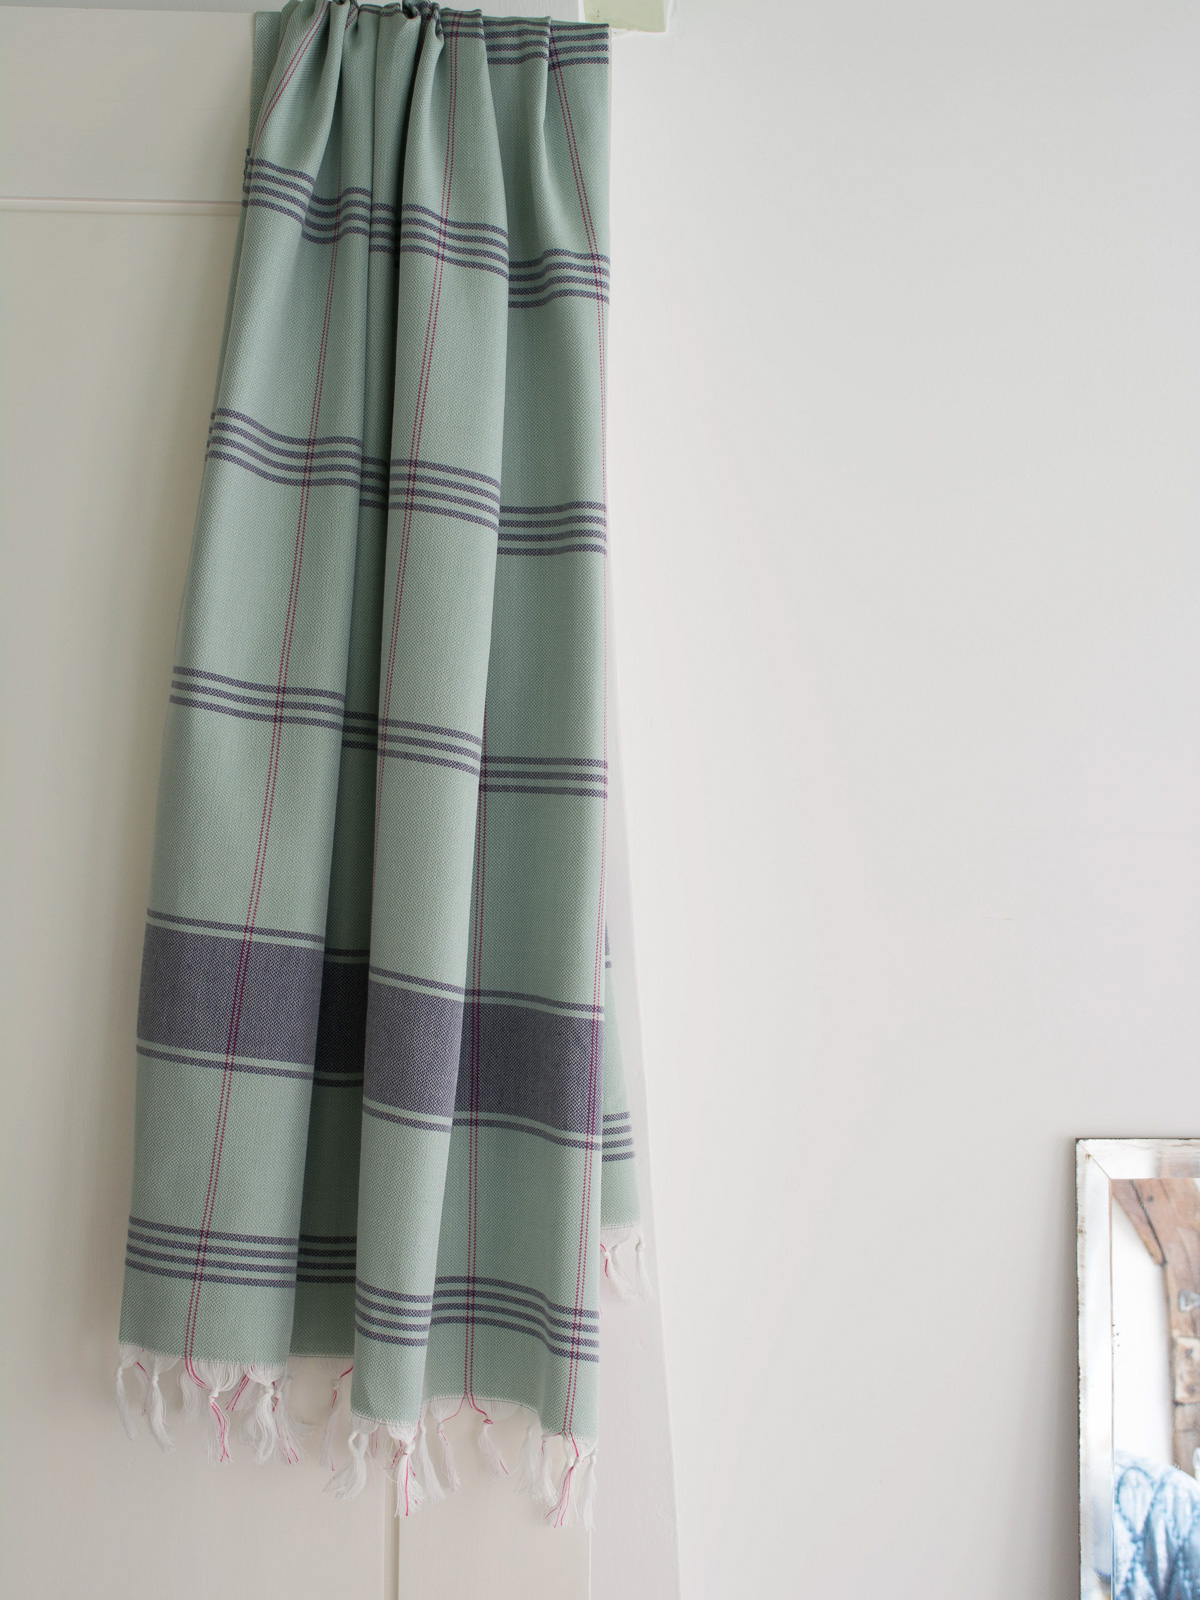 Hammam Towel Checkered Grey Green Dark Blue